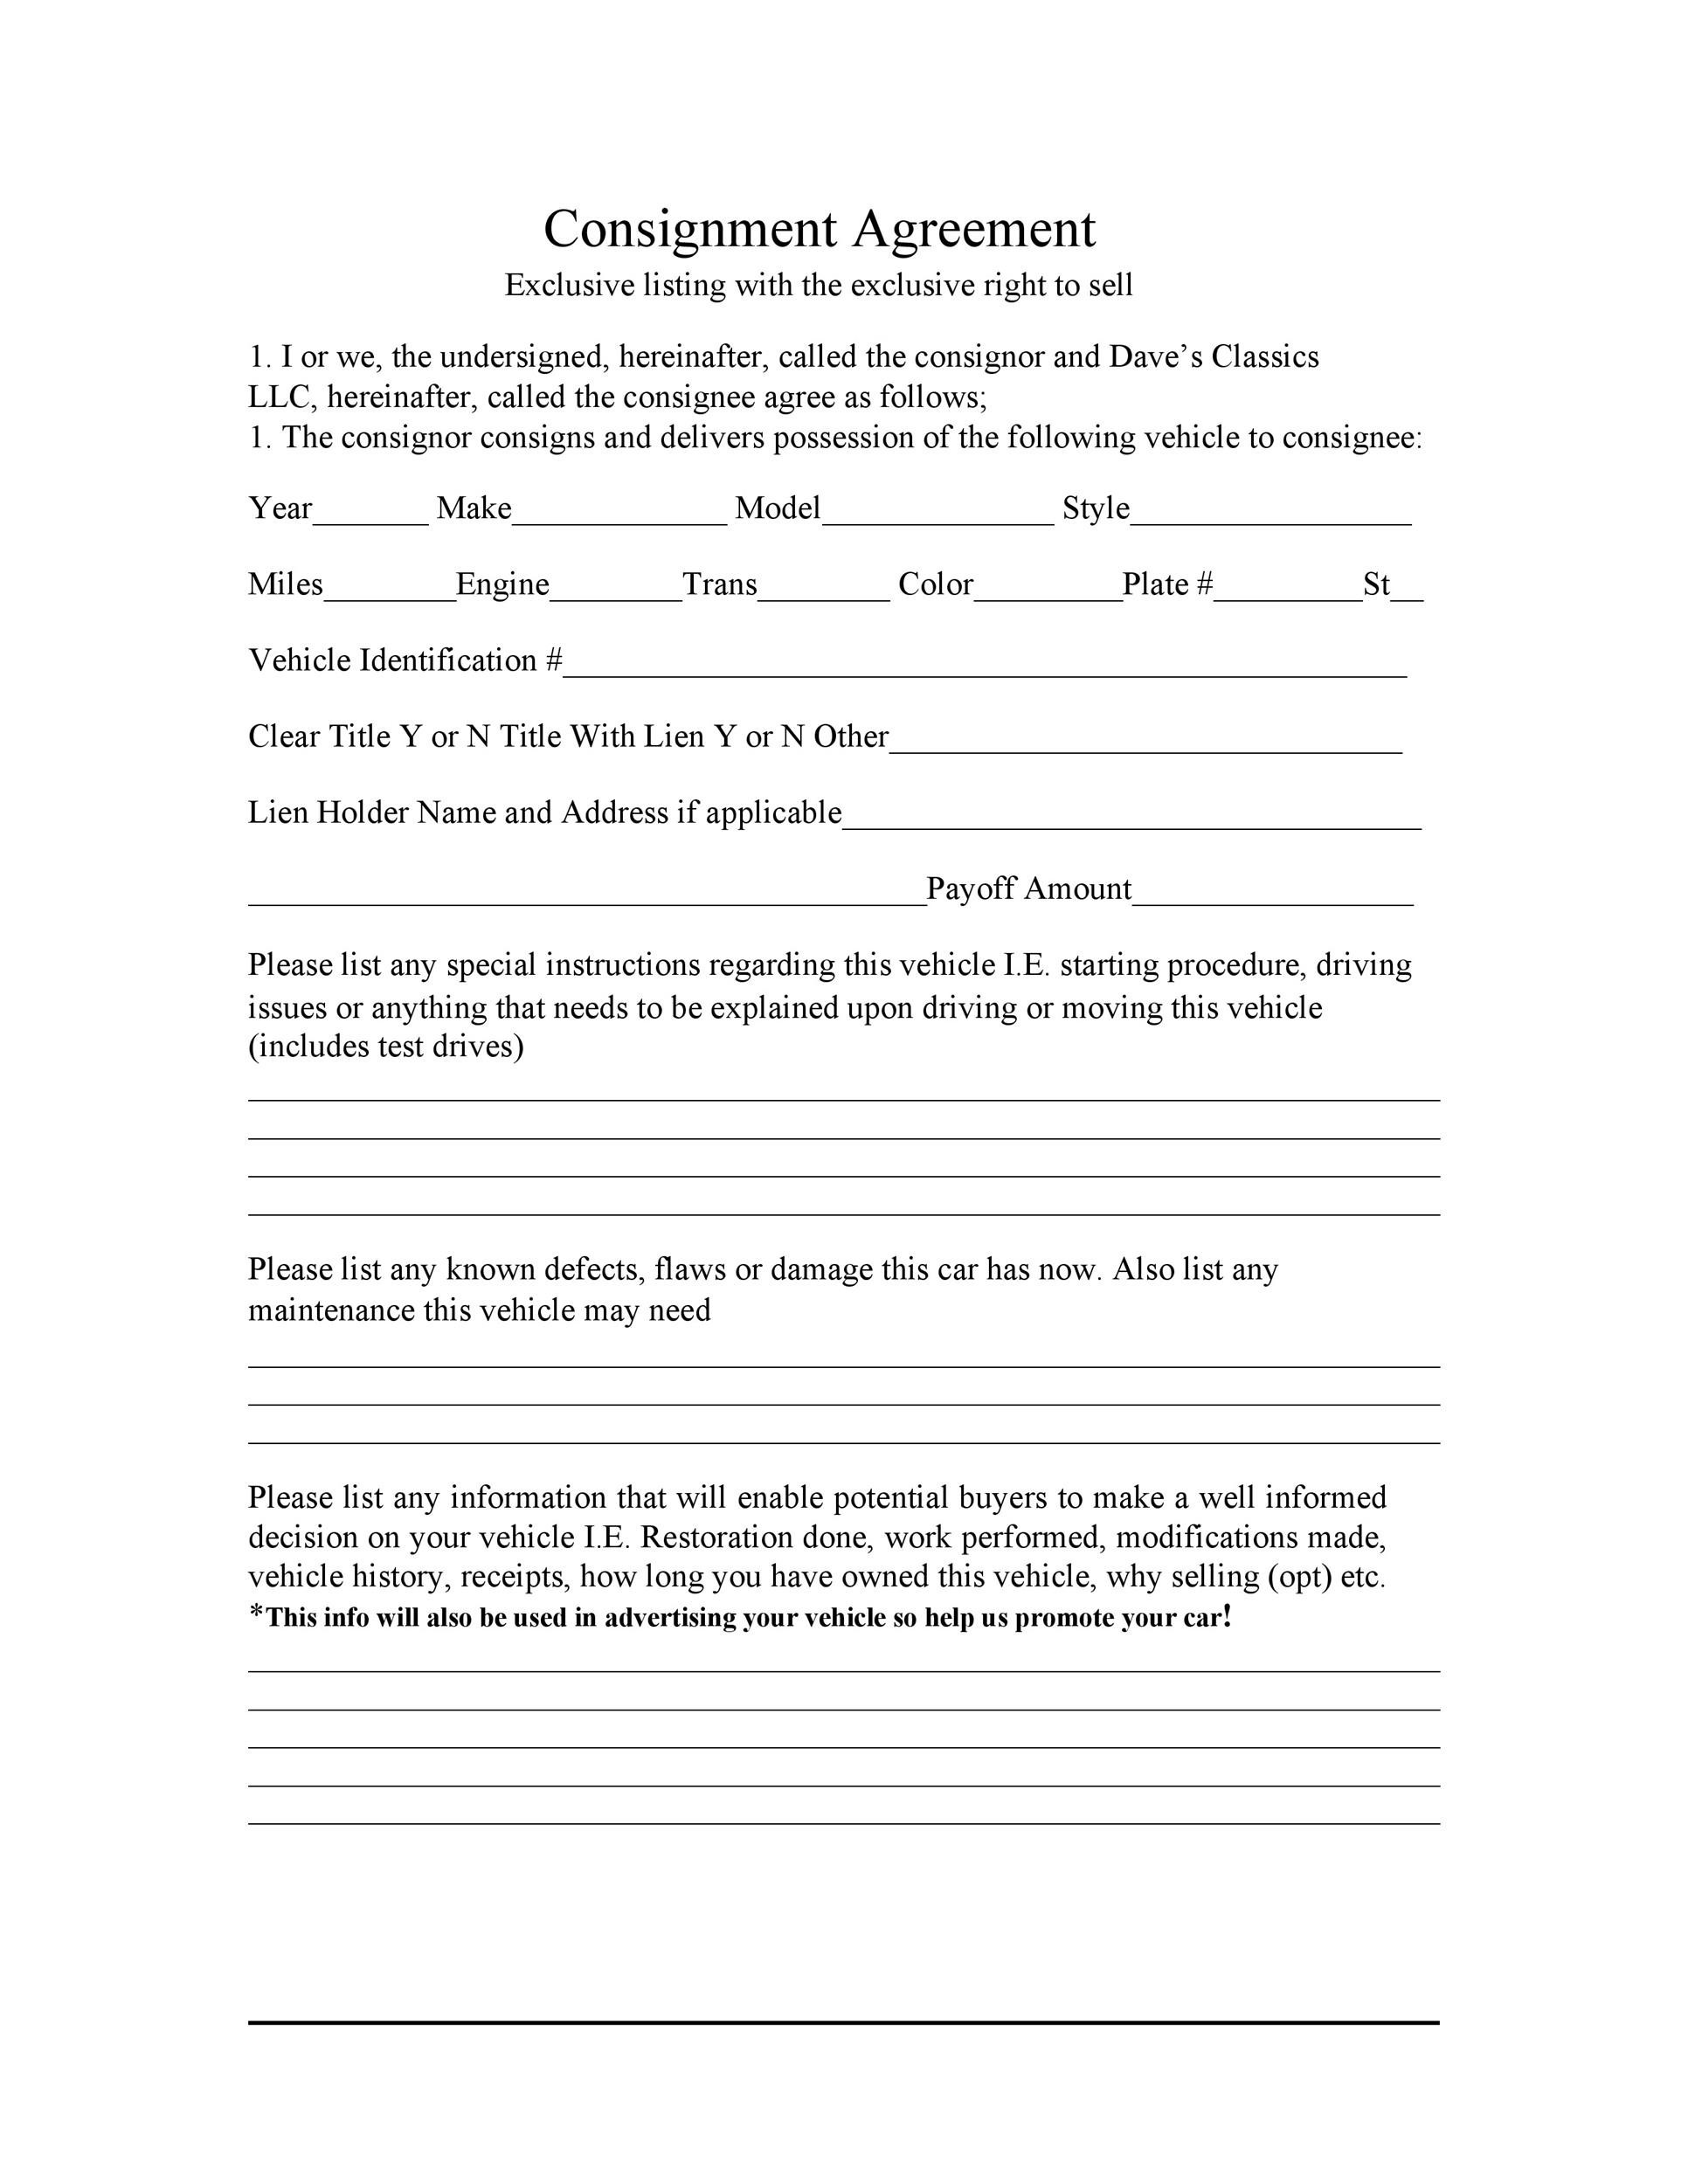 Free Consignment Agreement Template 39